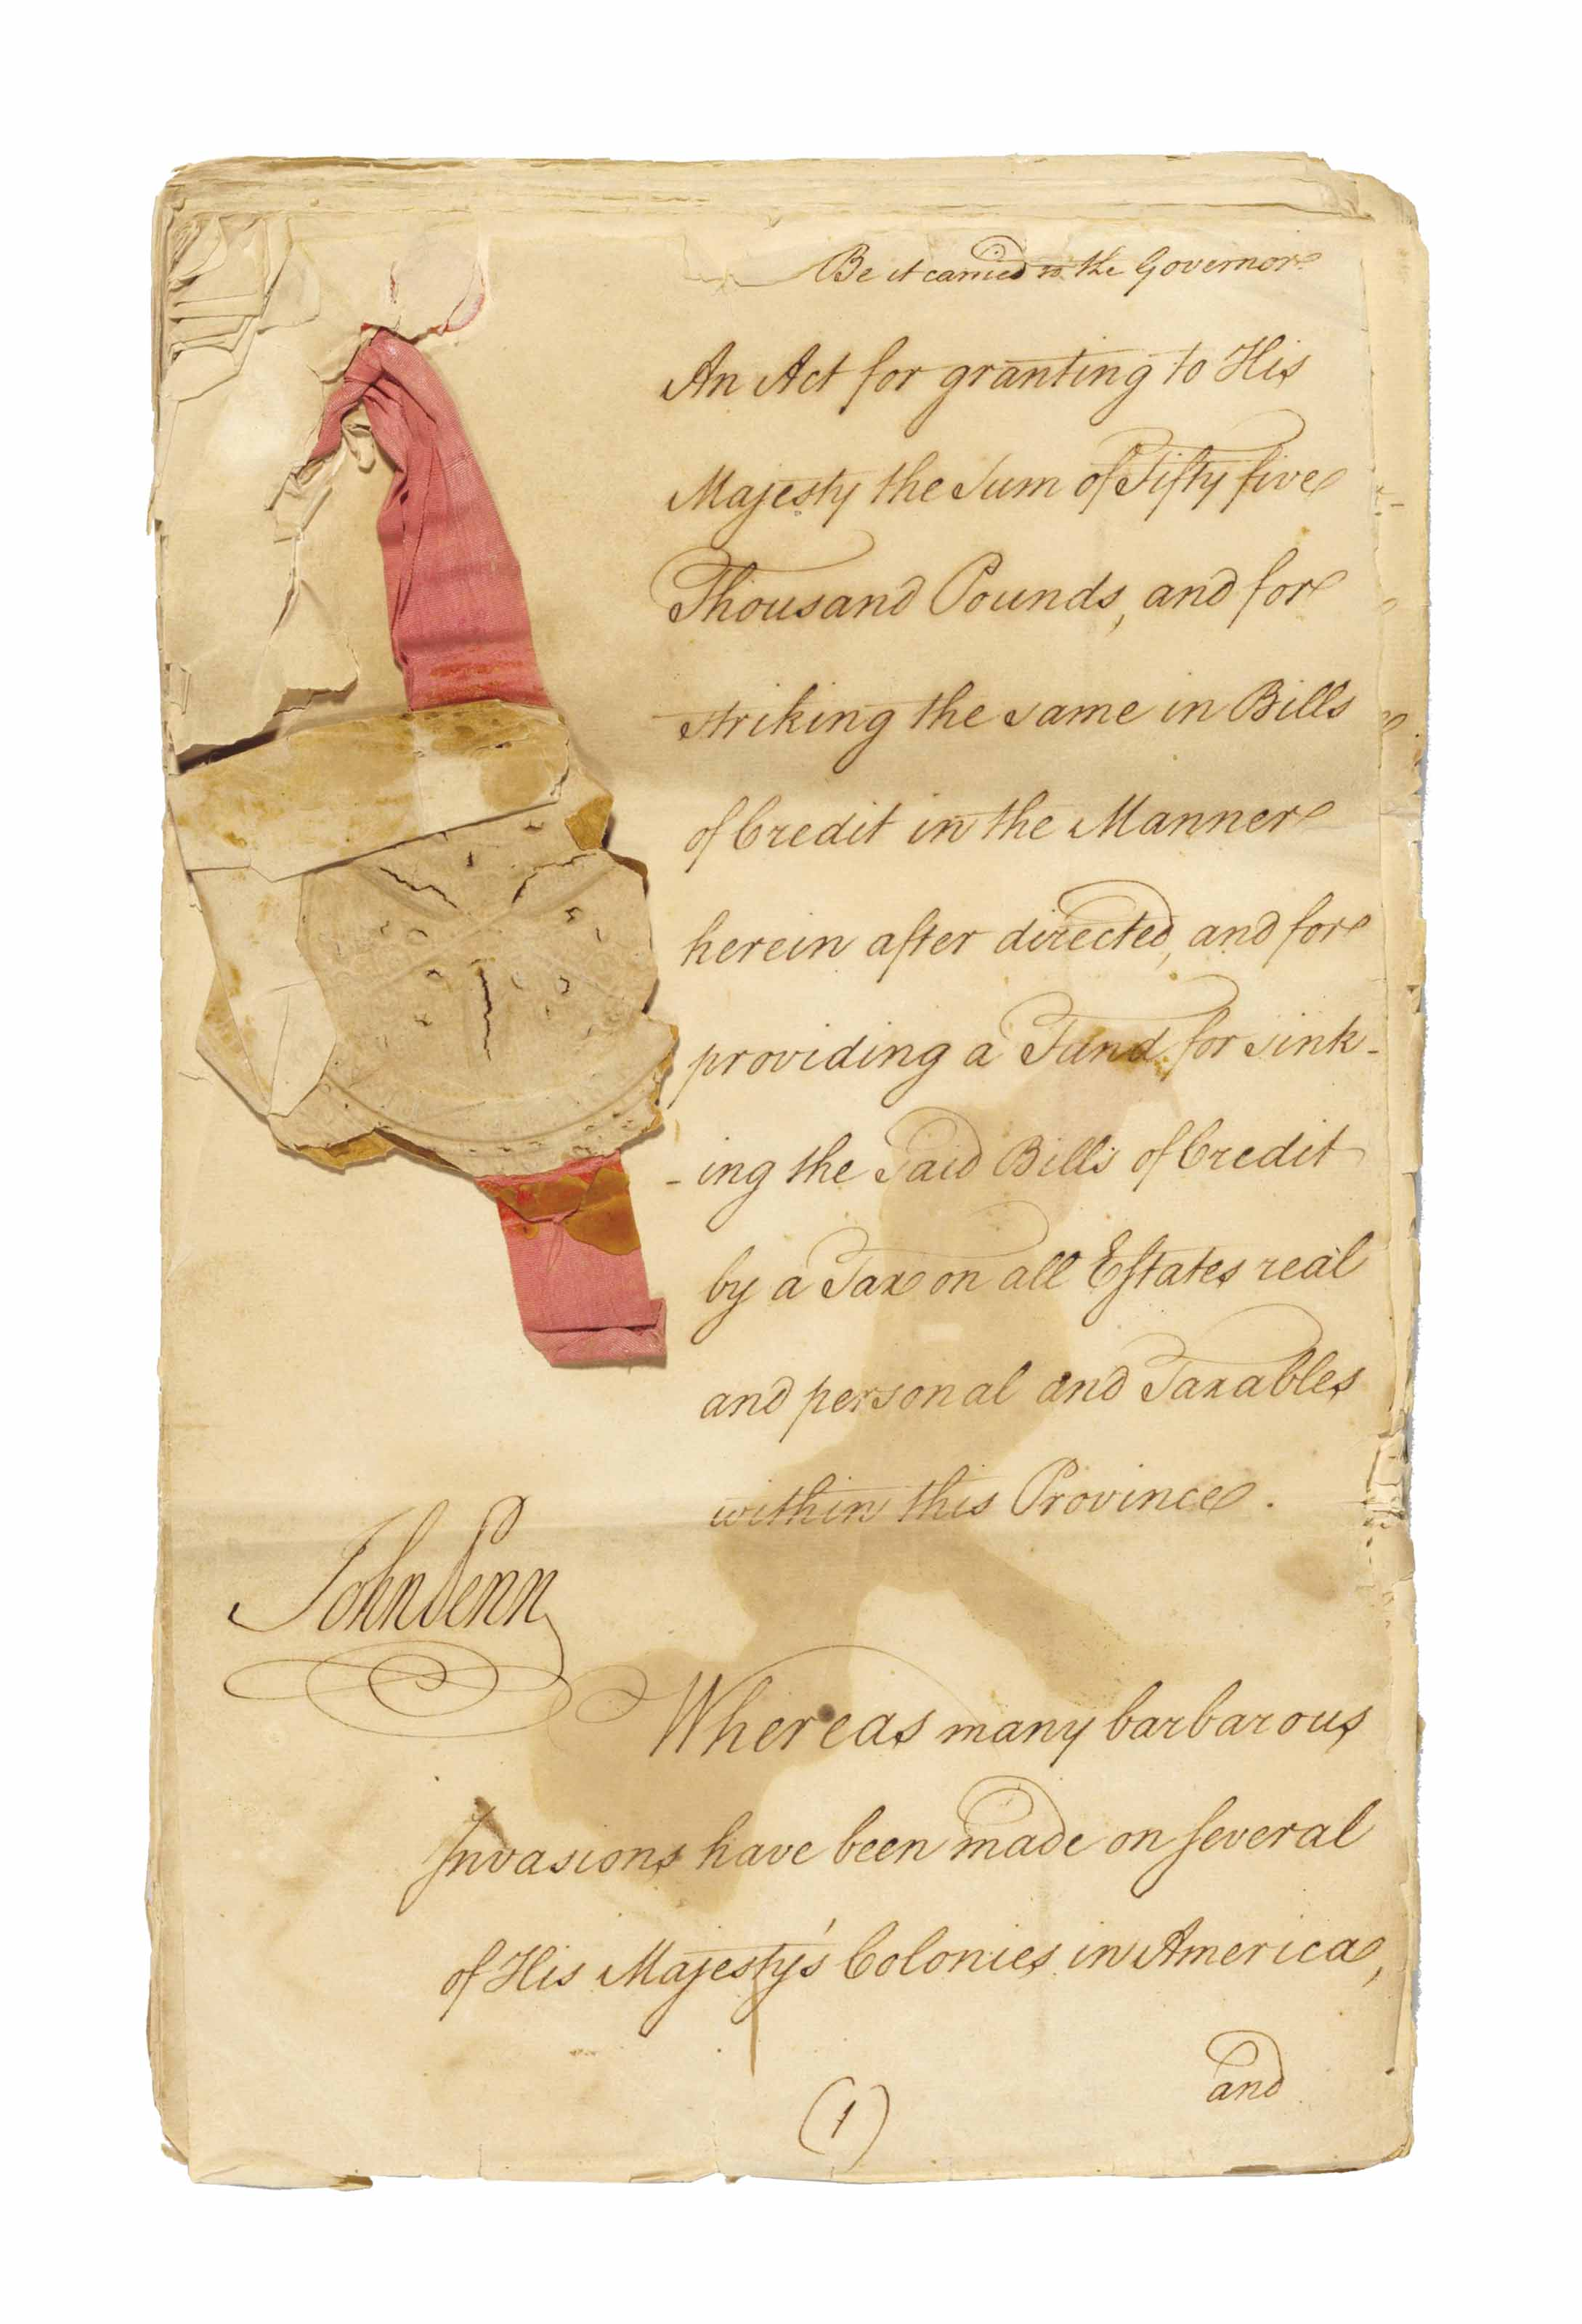 FRANKLIN, Benjamin. Document s